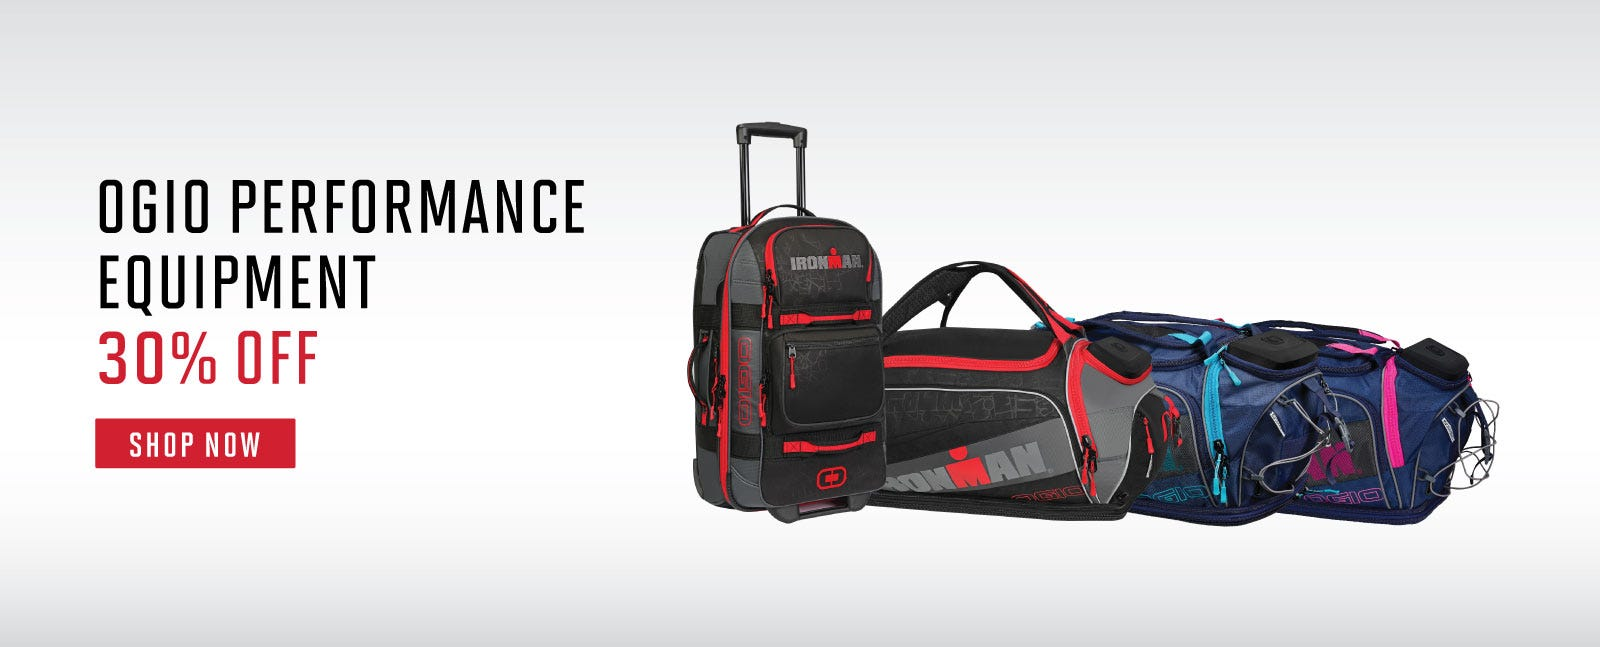 IRONMAN OGIO PERFORMANCE DUFFELS 30% OFF